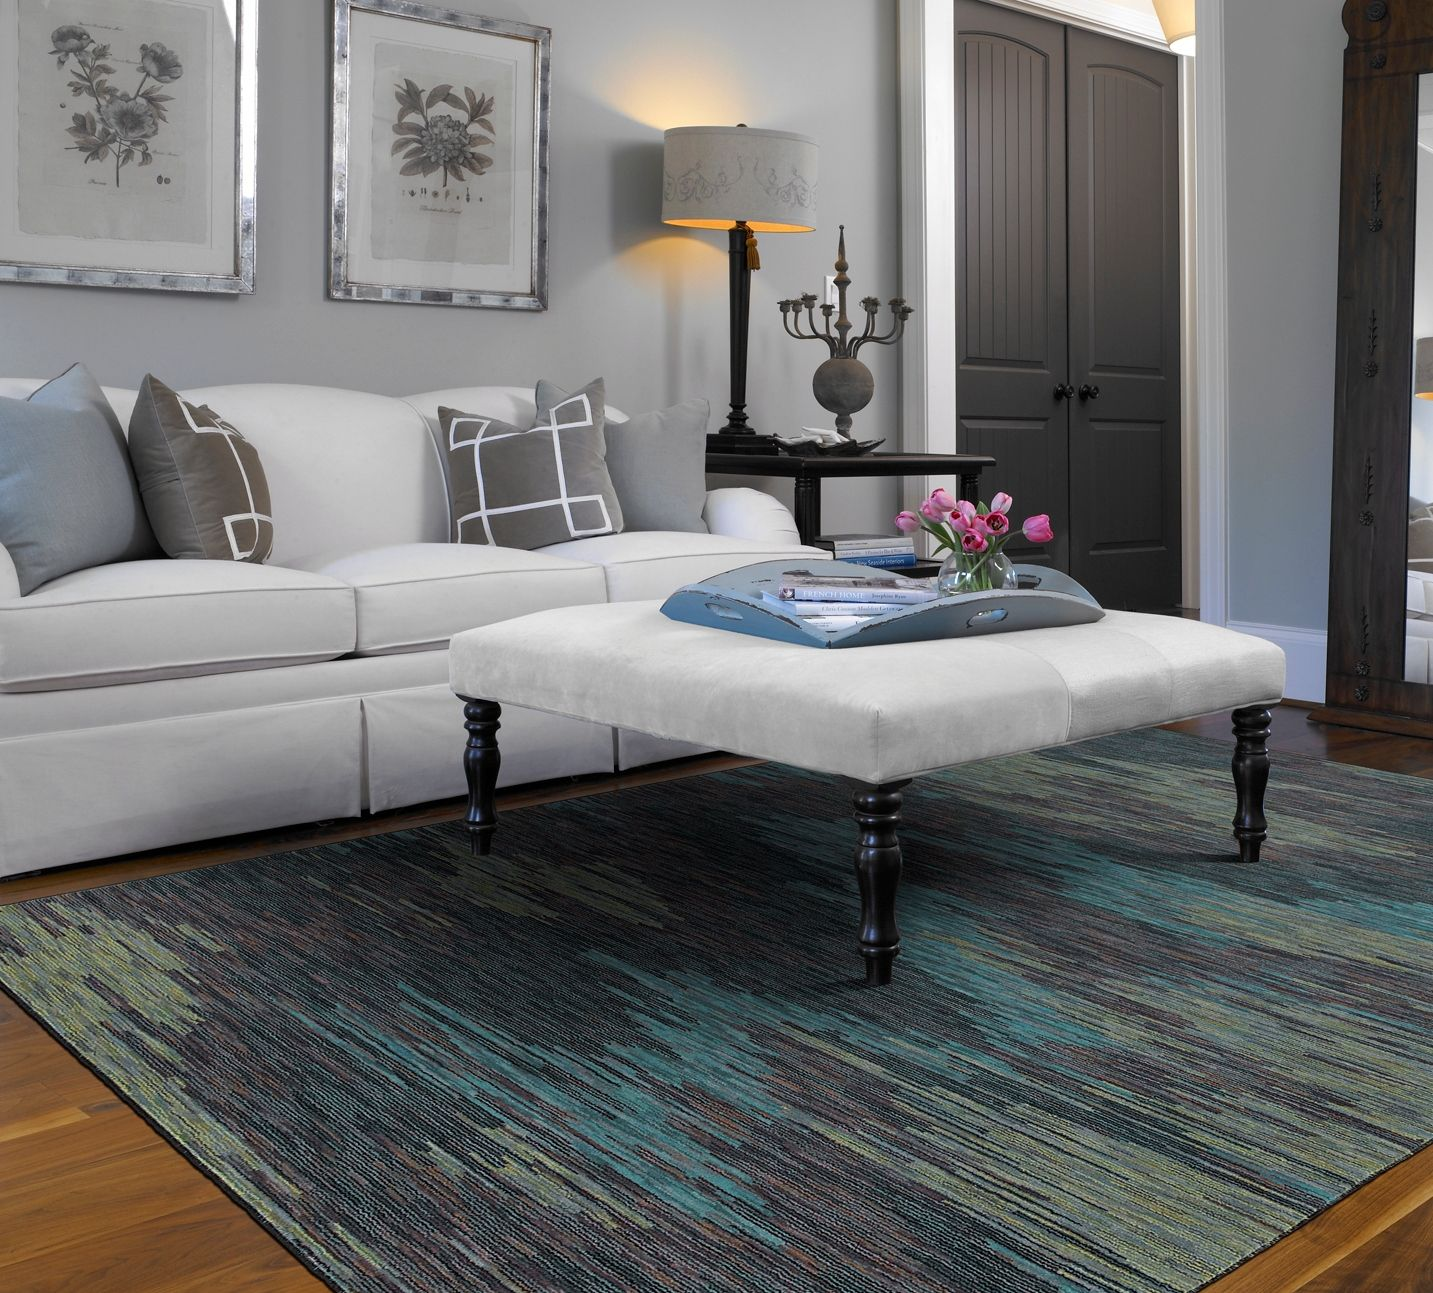 Hgtv Home Area Rug In Style Ethos Color Blue Flooring By Shaw